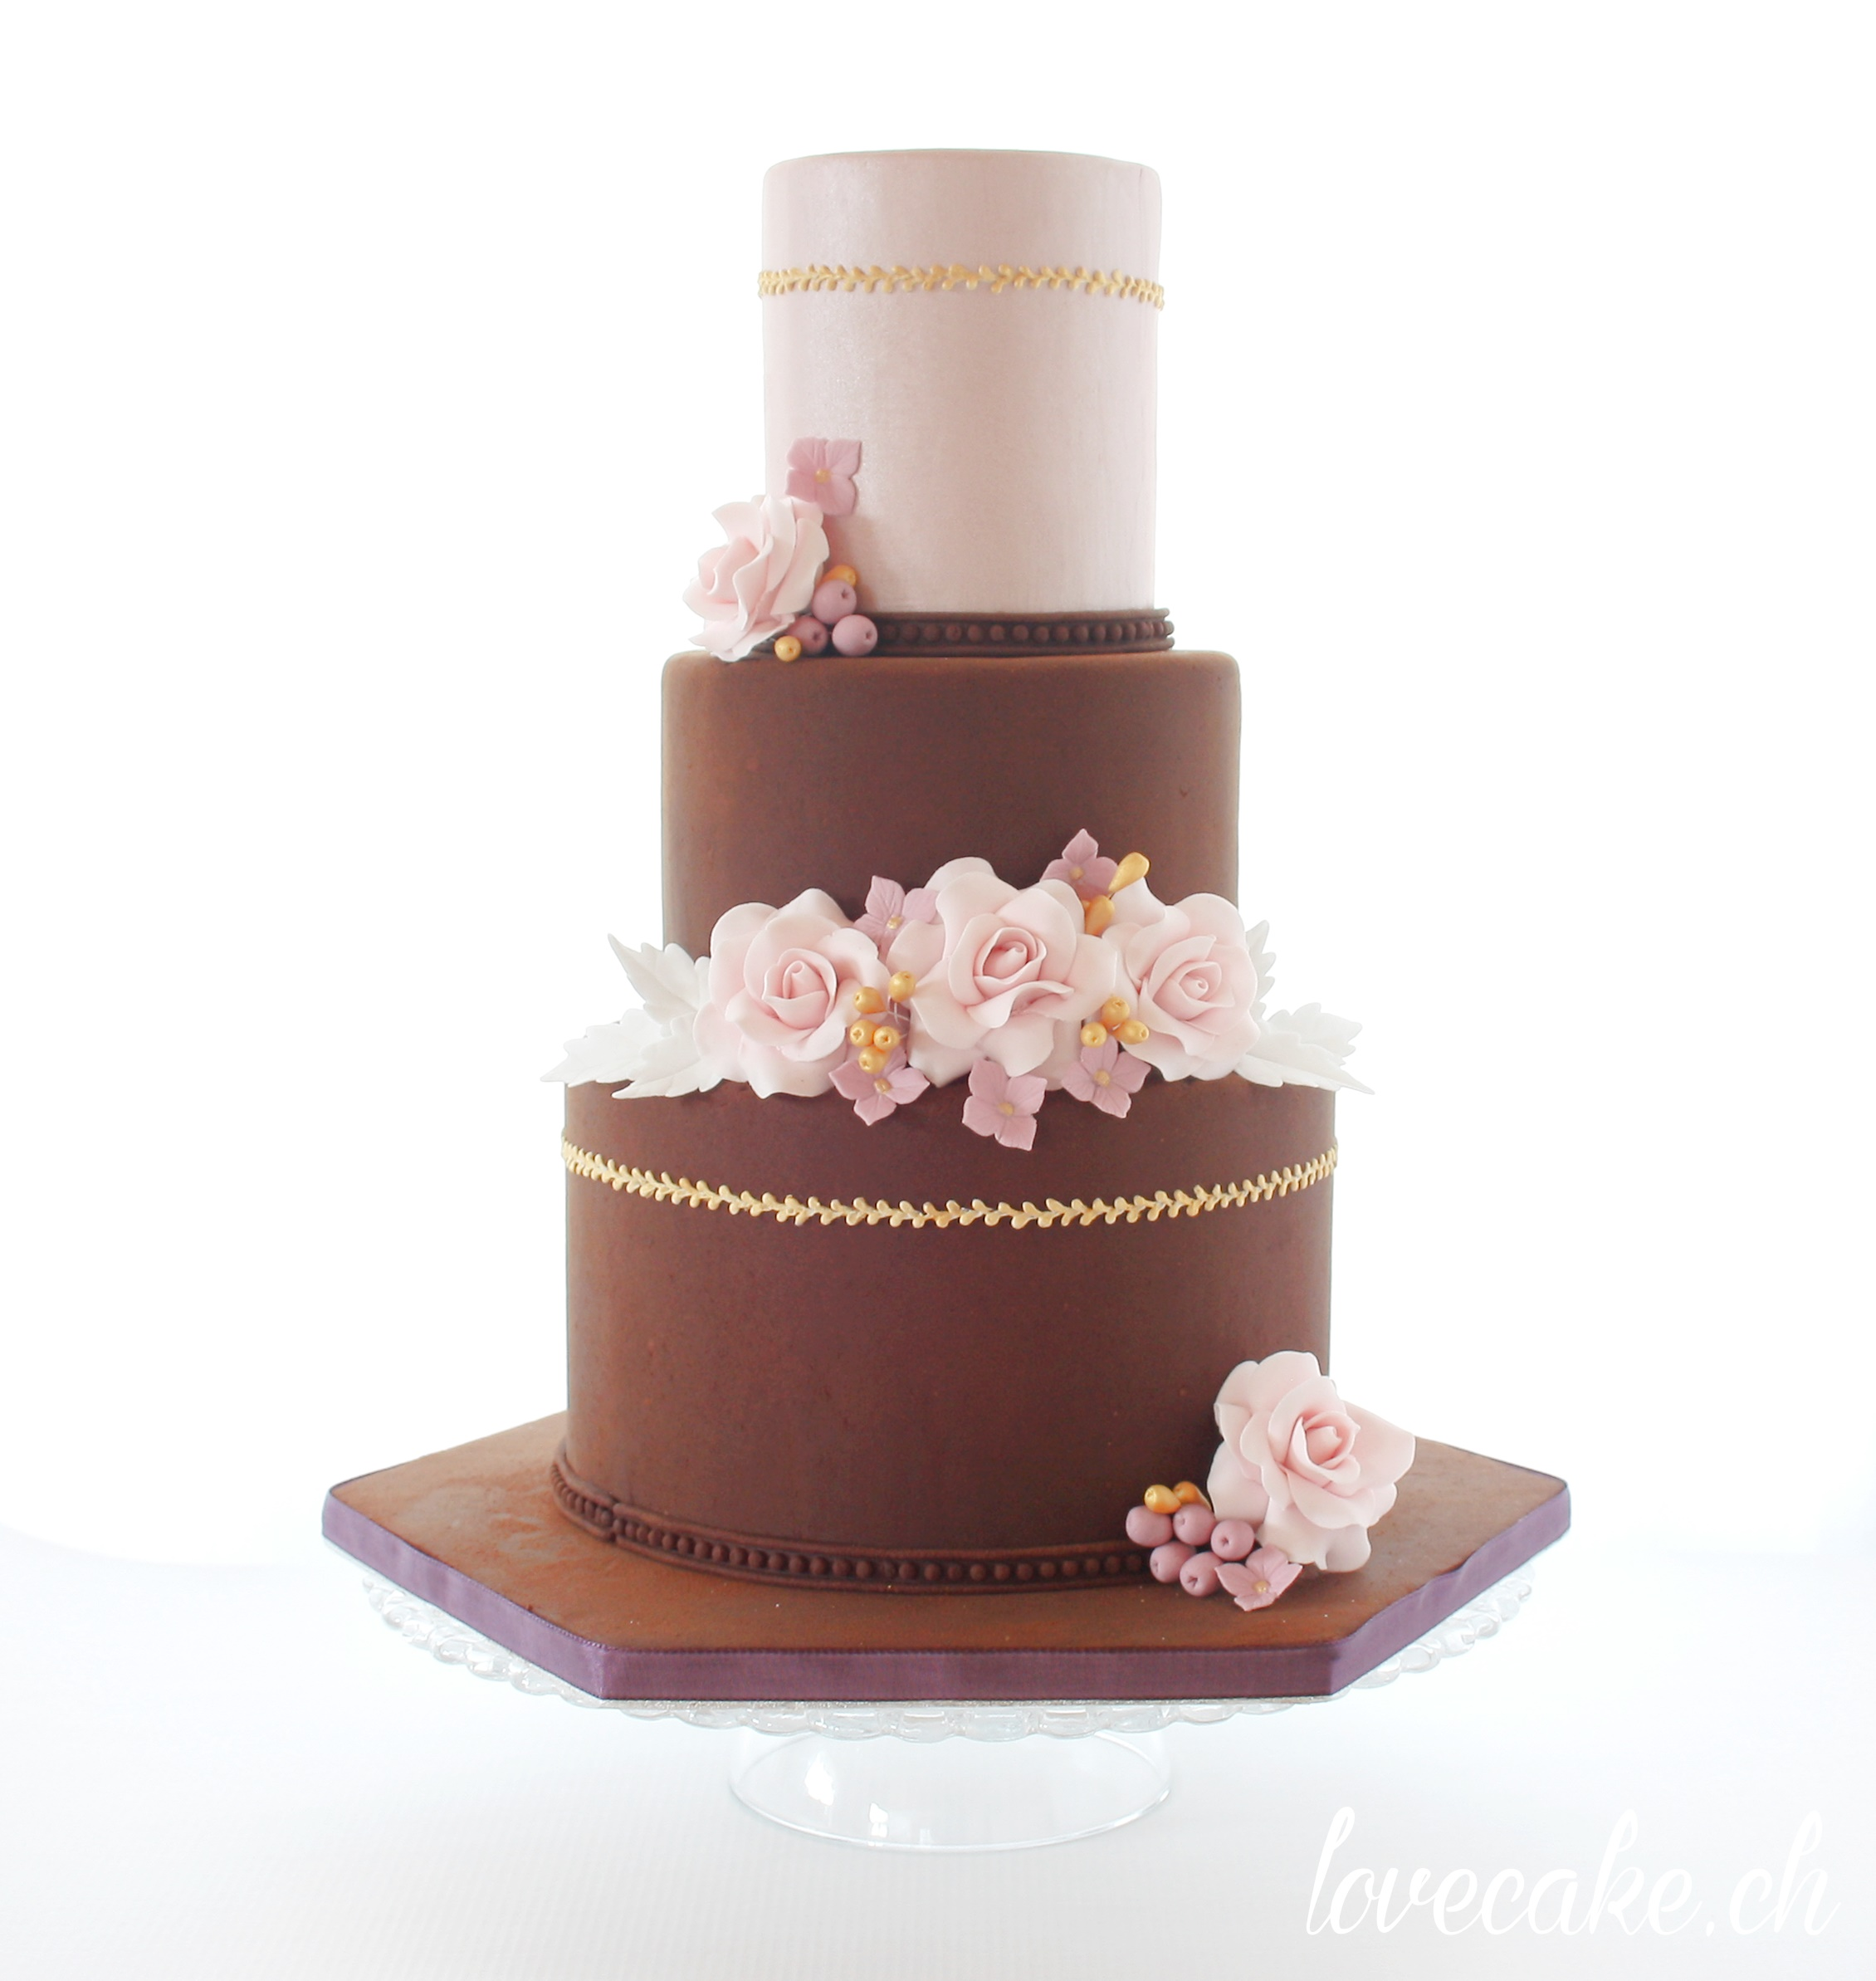 Brown and light pink fondant wedding cake